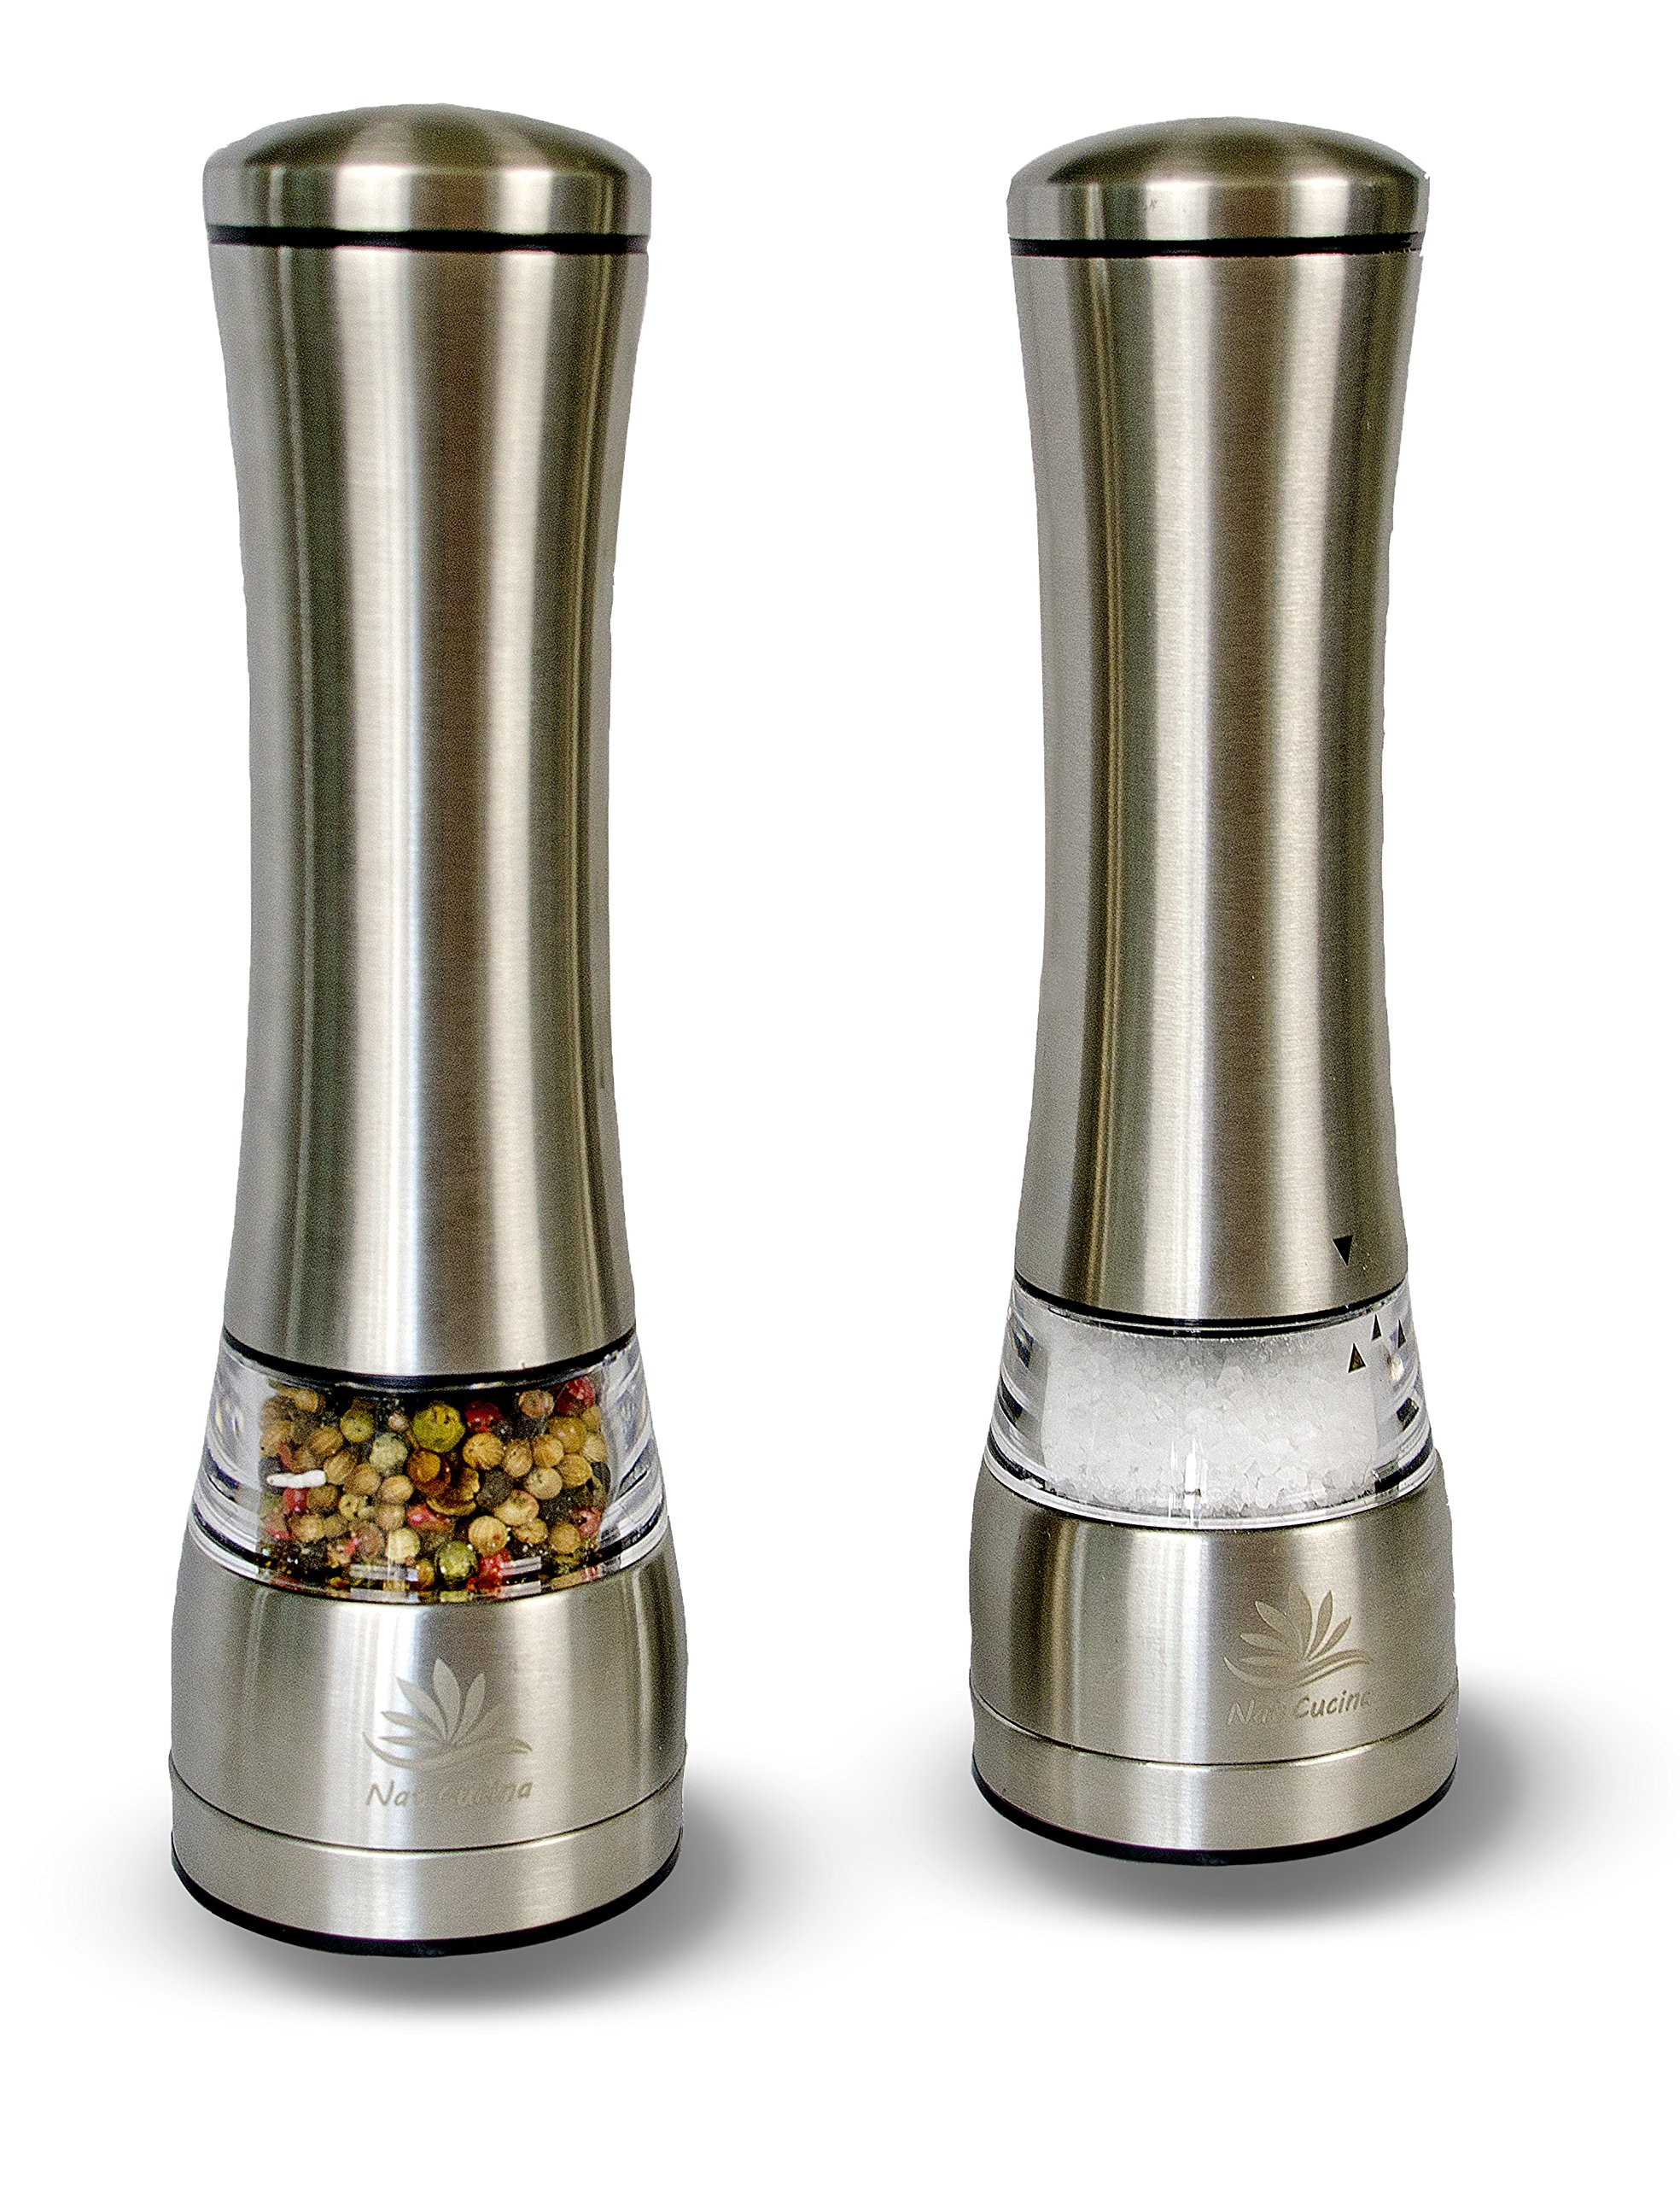 Large Salt / Pepper Grinders by NAT-CUCINA in 18/10 Stainless Steel Available in a Set or Single